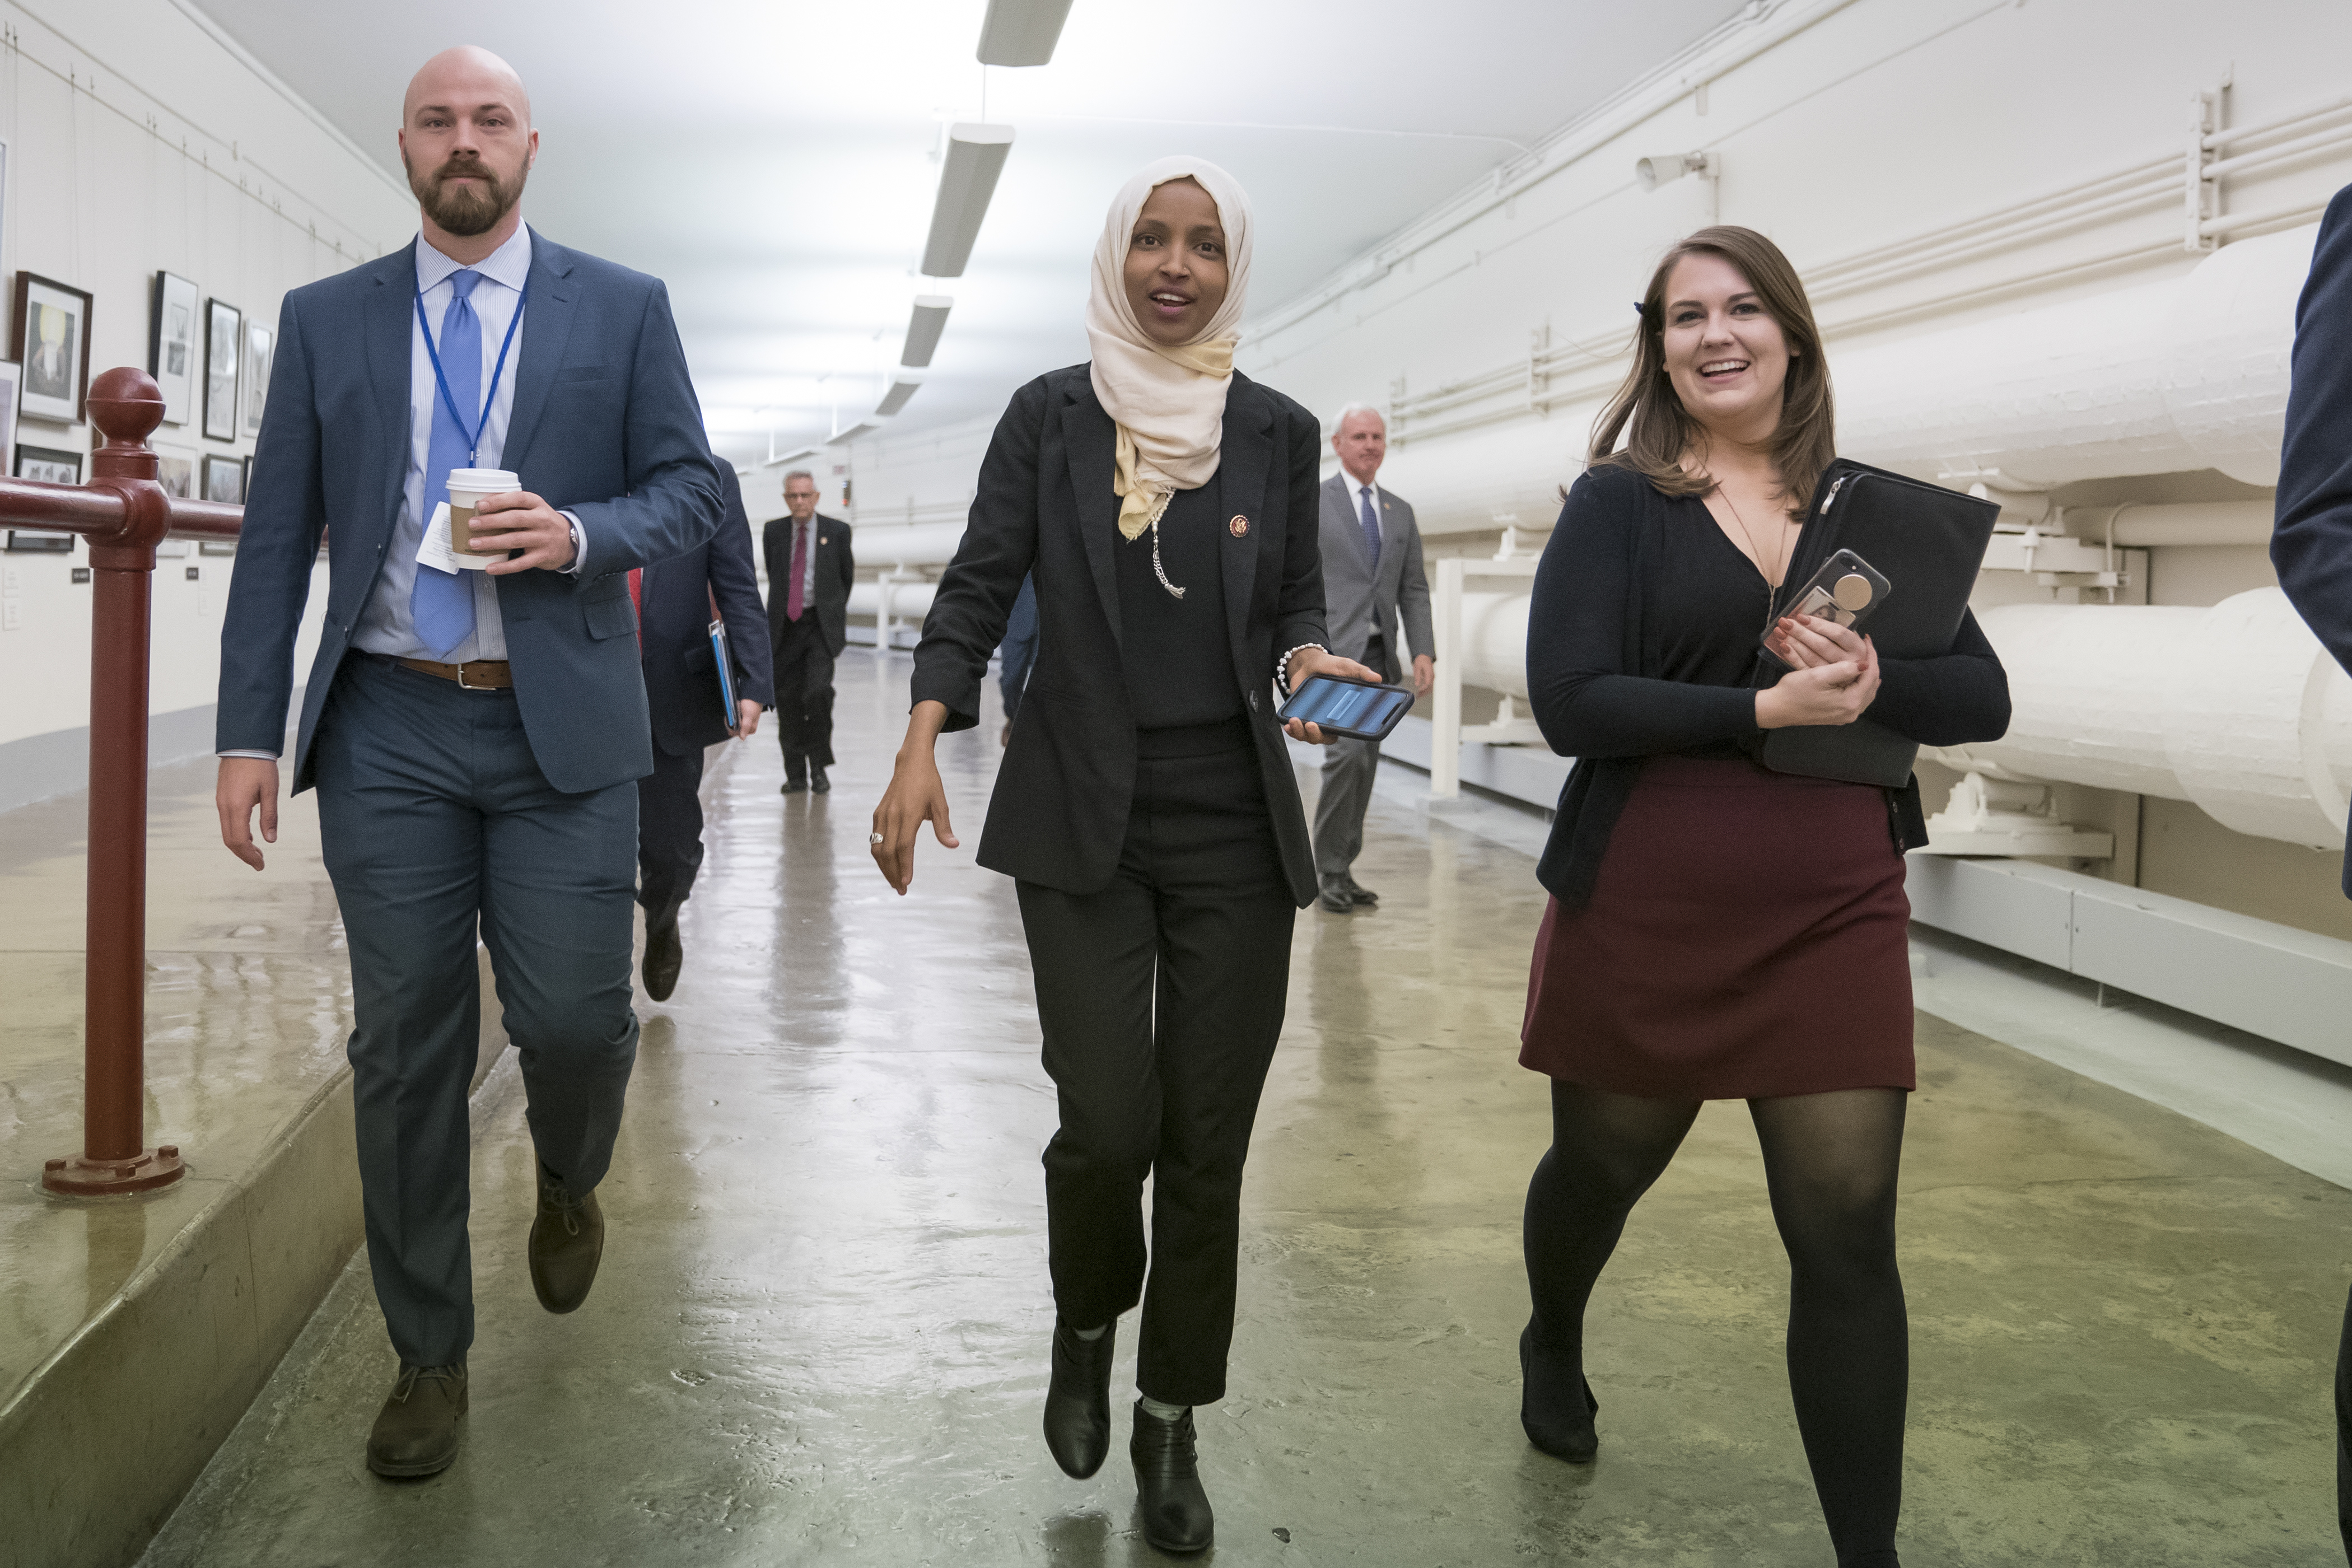 """Rep. Ilhan Omar, D-Minn., walks to the chamber, March 7, 2019, on Capitol Hill in Washington, as the House was preparing to vote on a resolution to speak out against, as Speaker of the House Nancy Pelosi said, """"anti-Semitism, anti-Islamophobia, anti-..."""